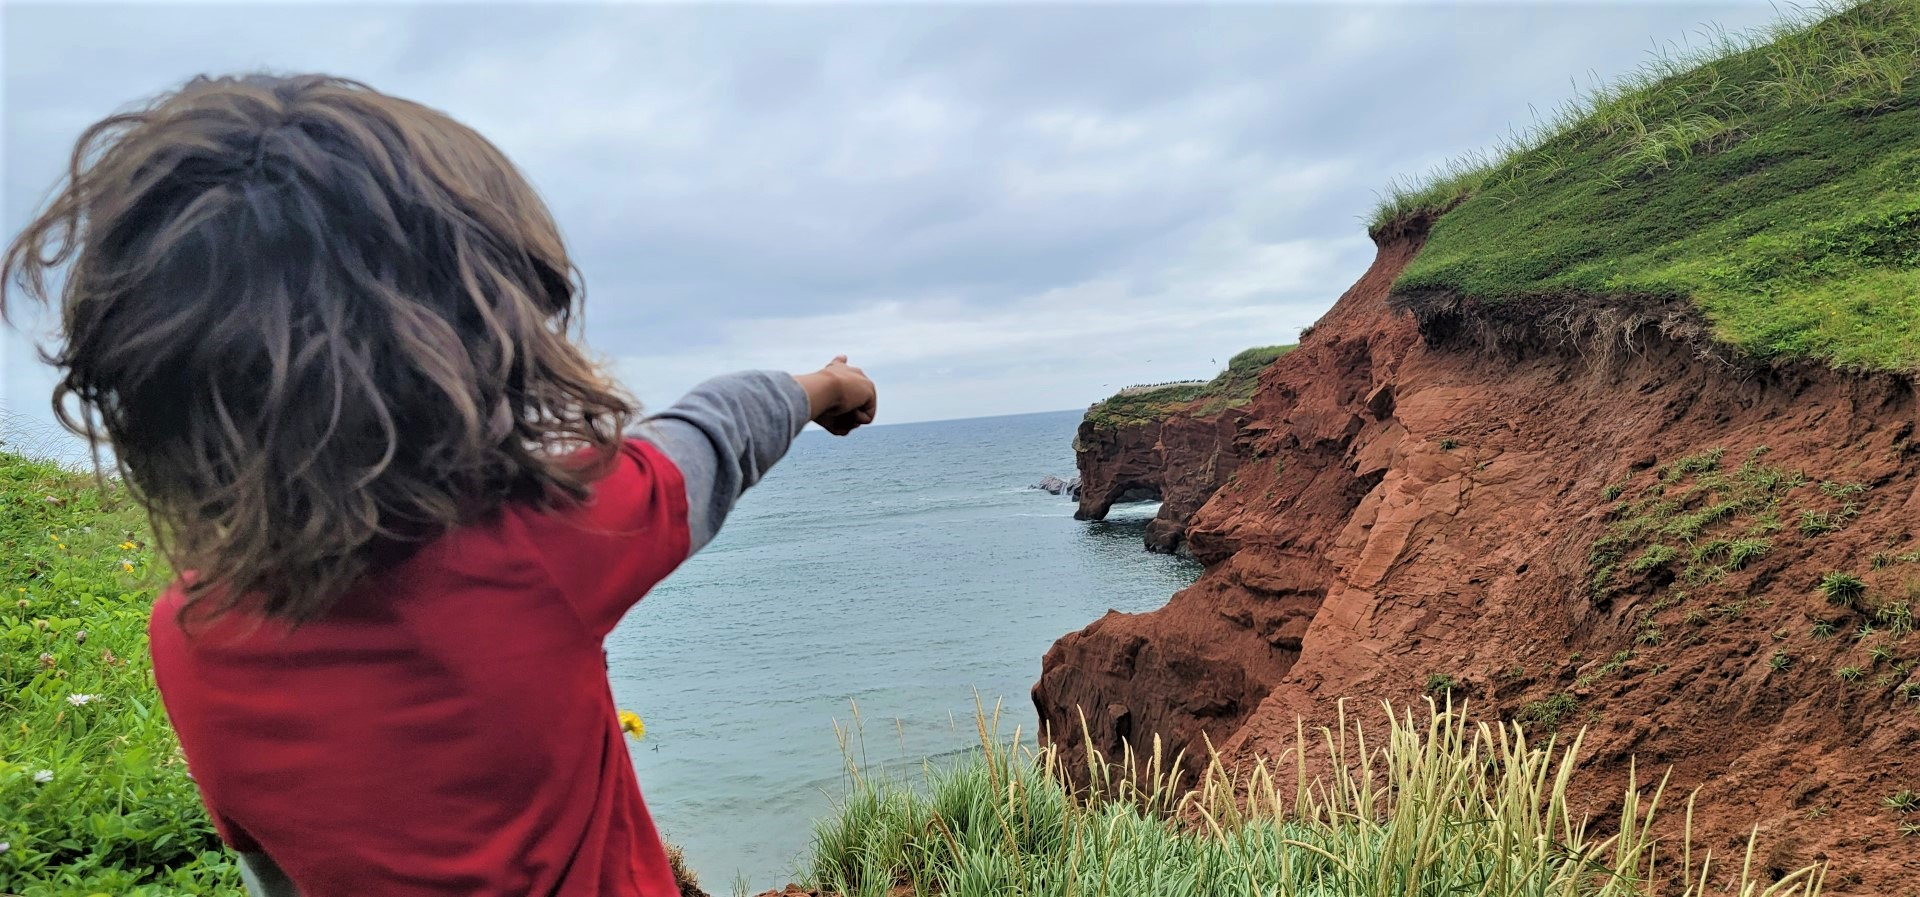 child in red shirt pointing at hills on Magdalen Islands